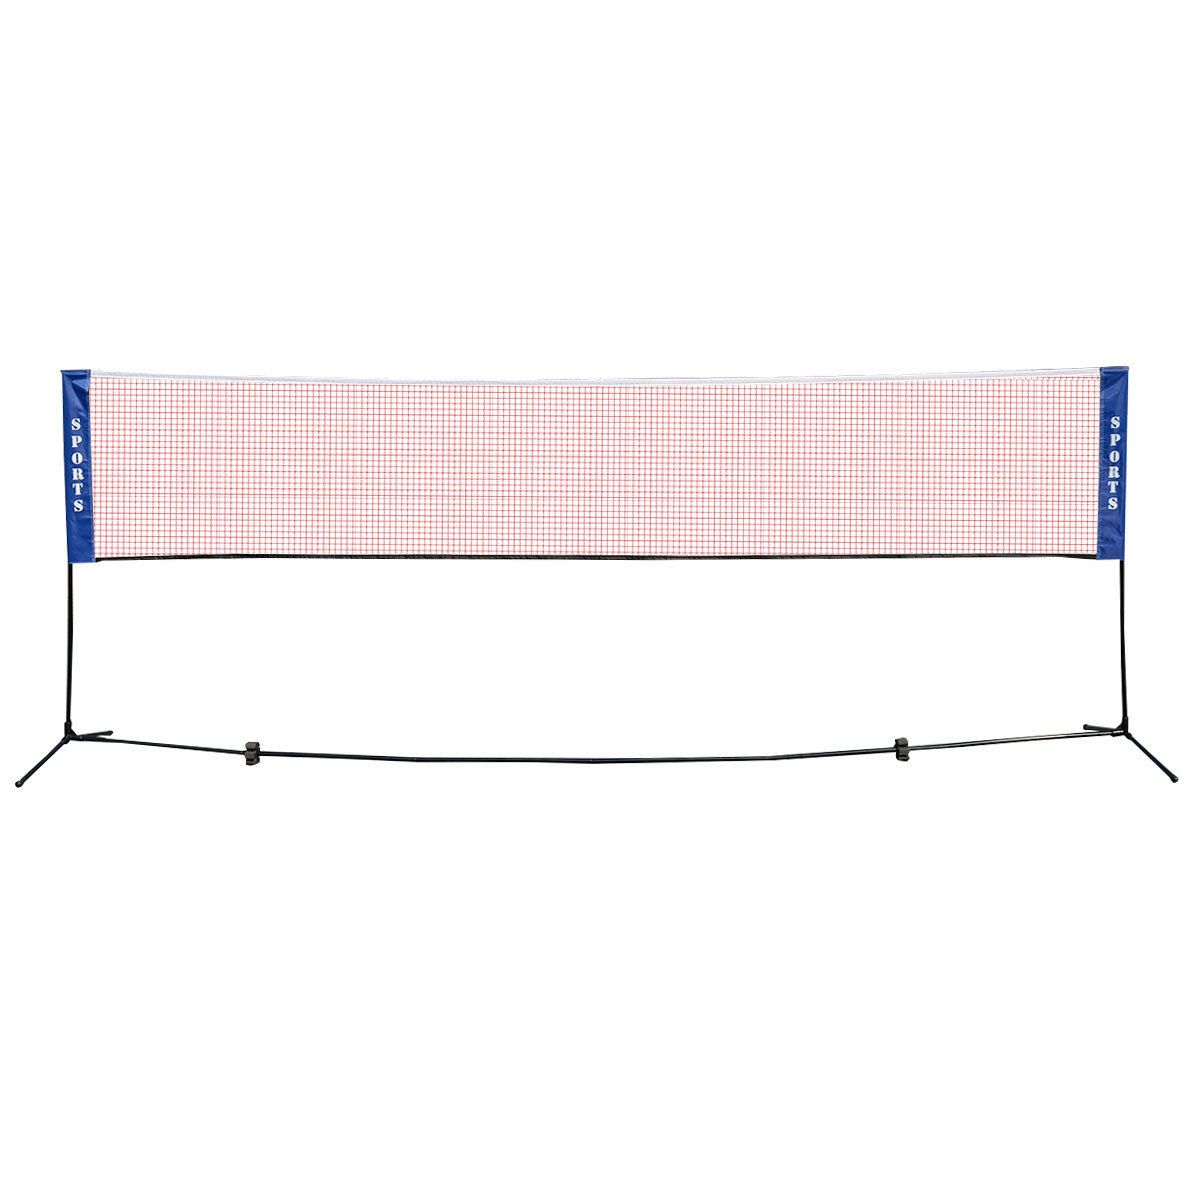 Portable 10 X 5 Badminton Beach Tennis Training Net Badminton Nets Beach Tennis Badminton